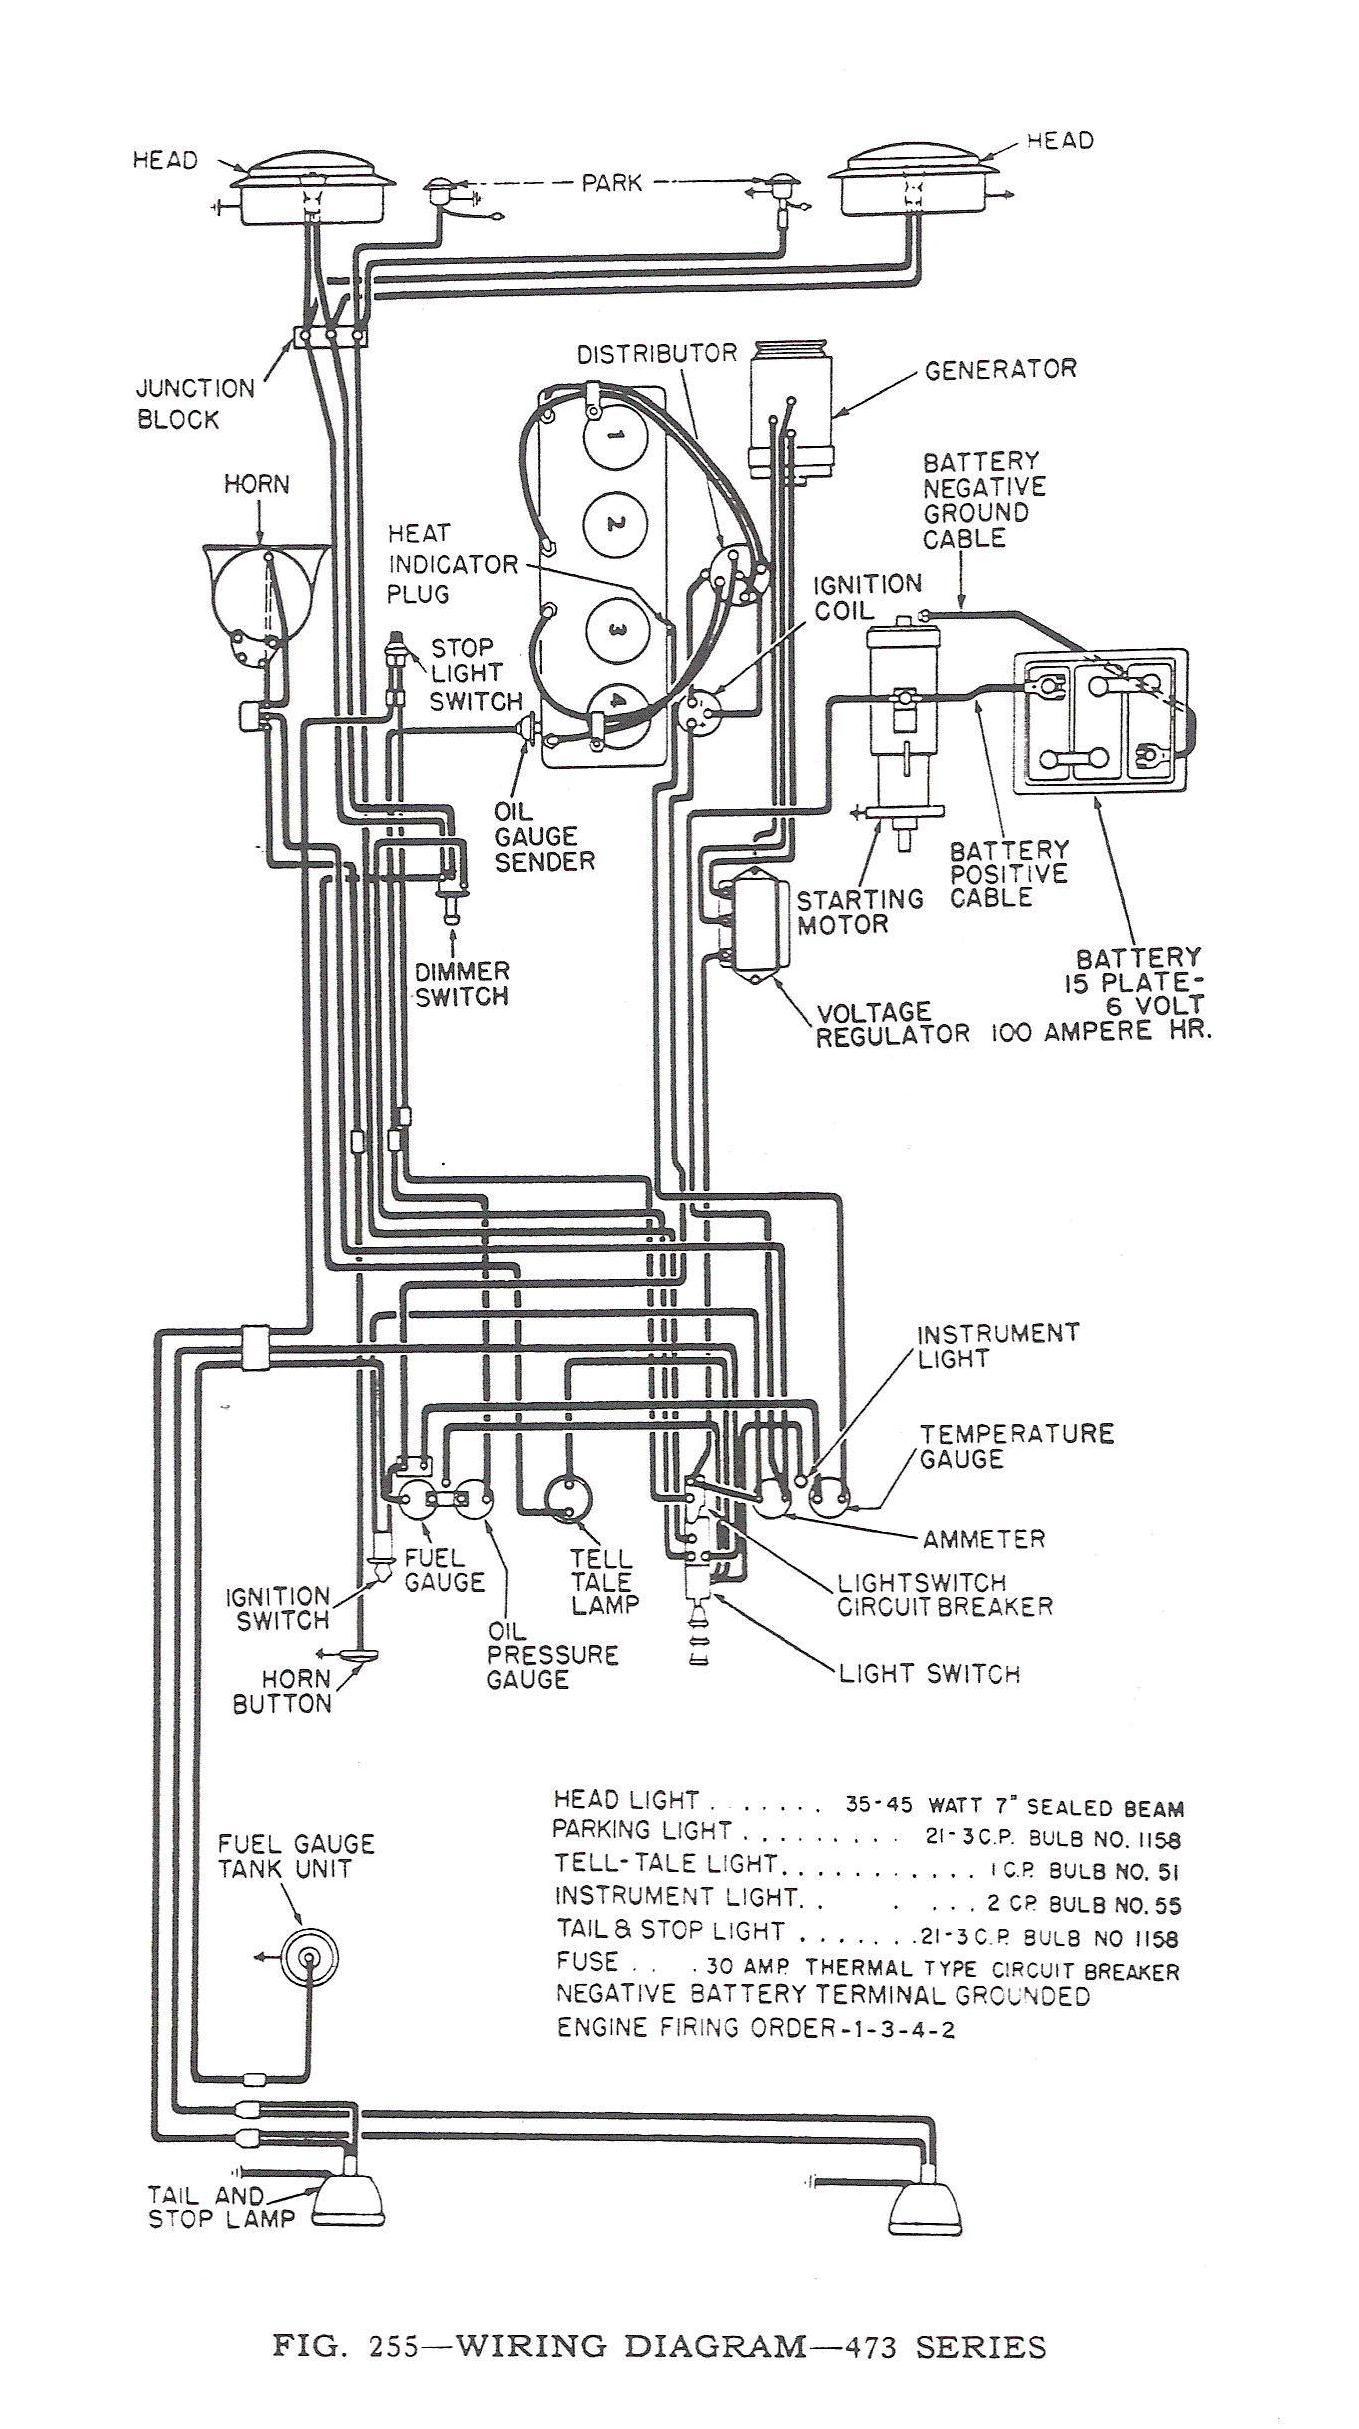 hight resolution of 1952 jeep series 473 wiring diagrams google search